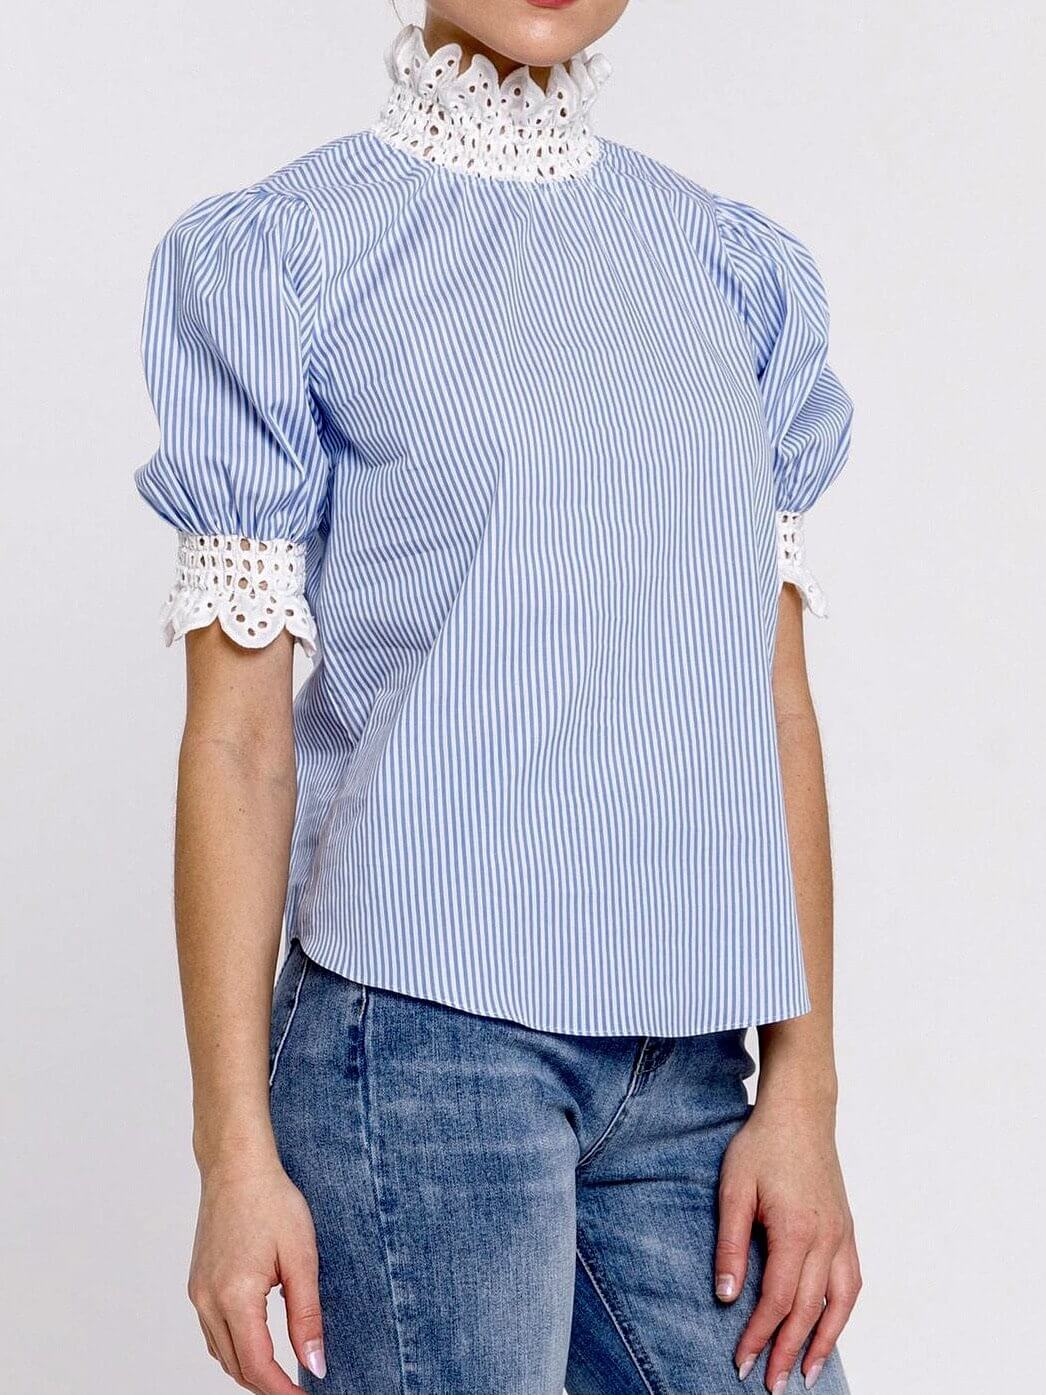 model wears top of blue and white lines, sleeves and high neck with embroidered fabric details